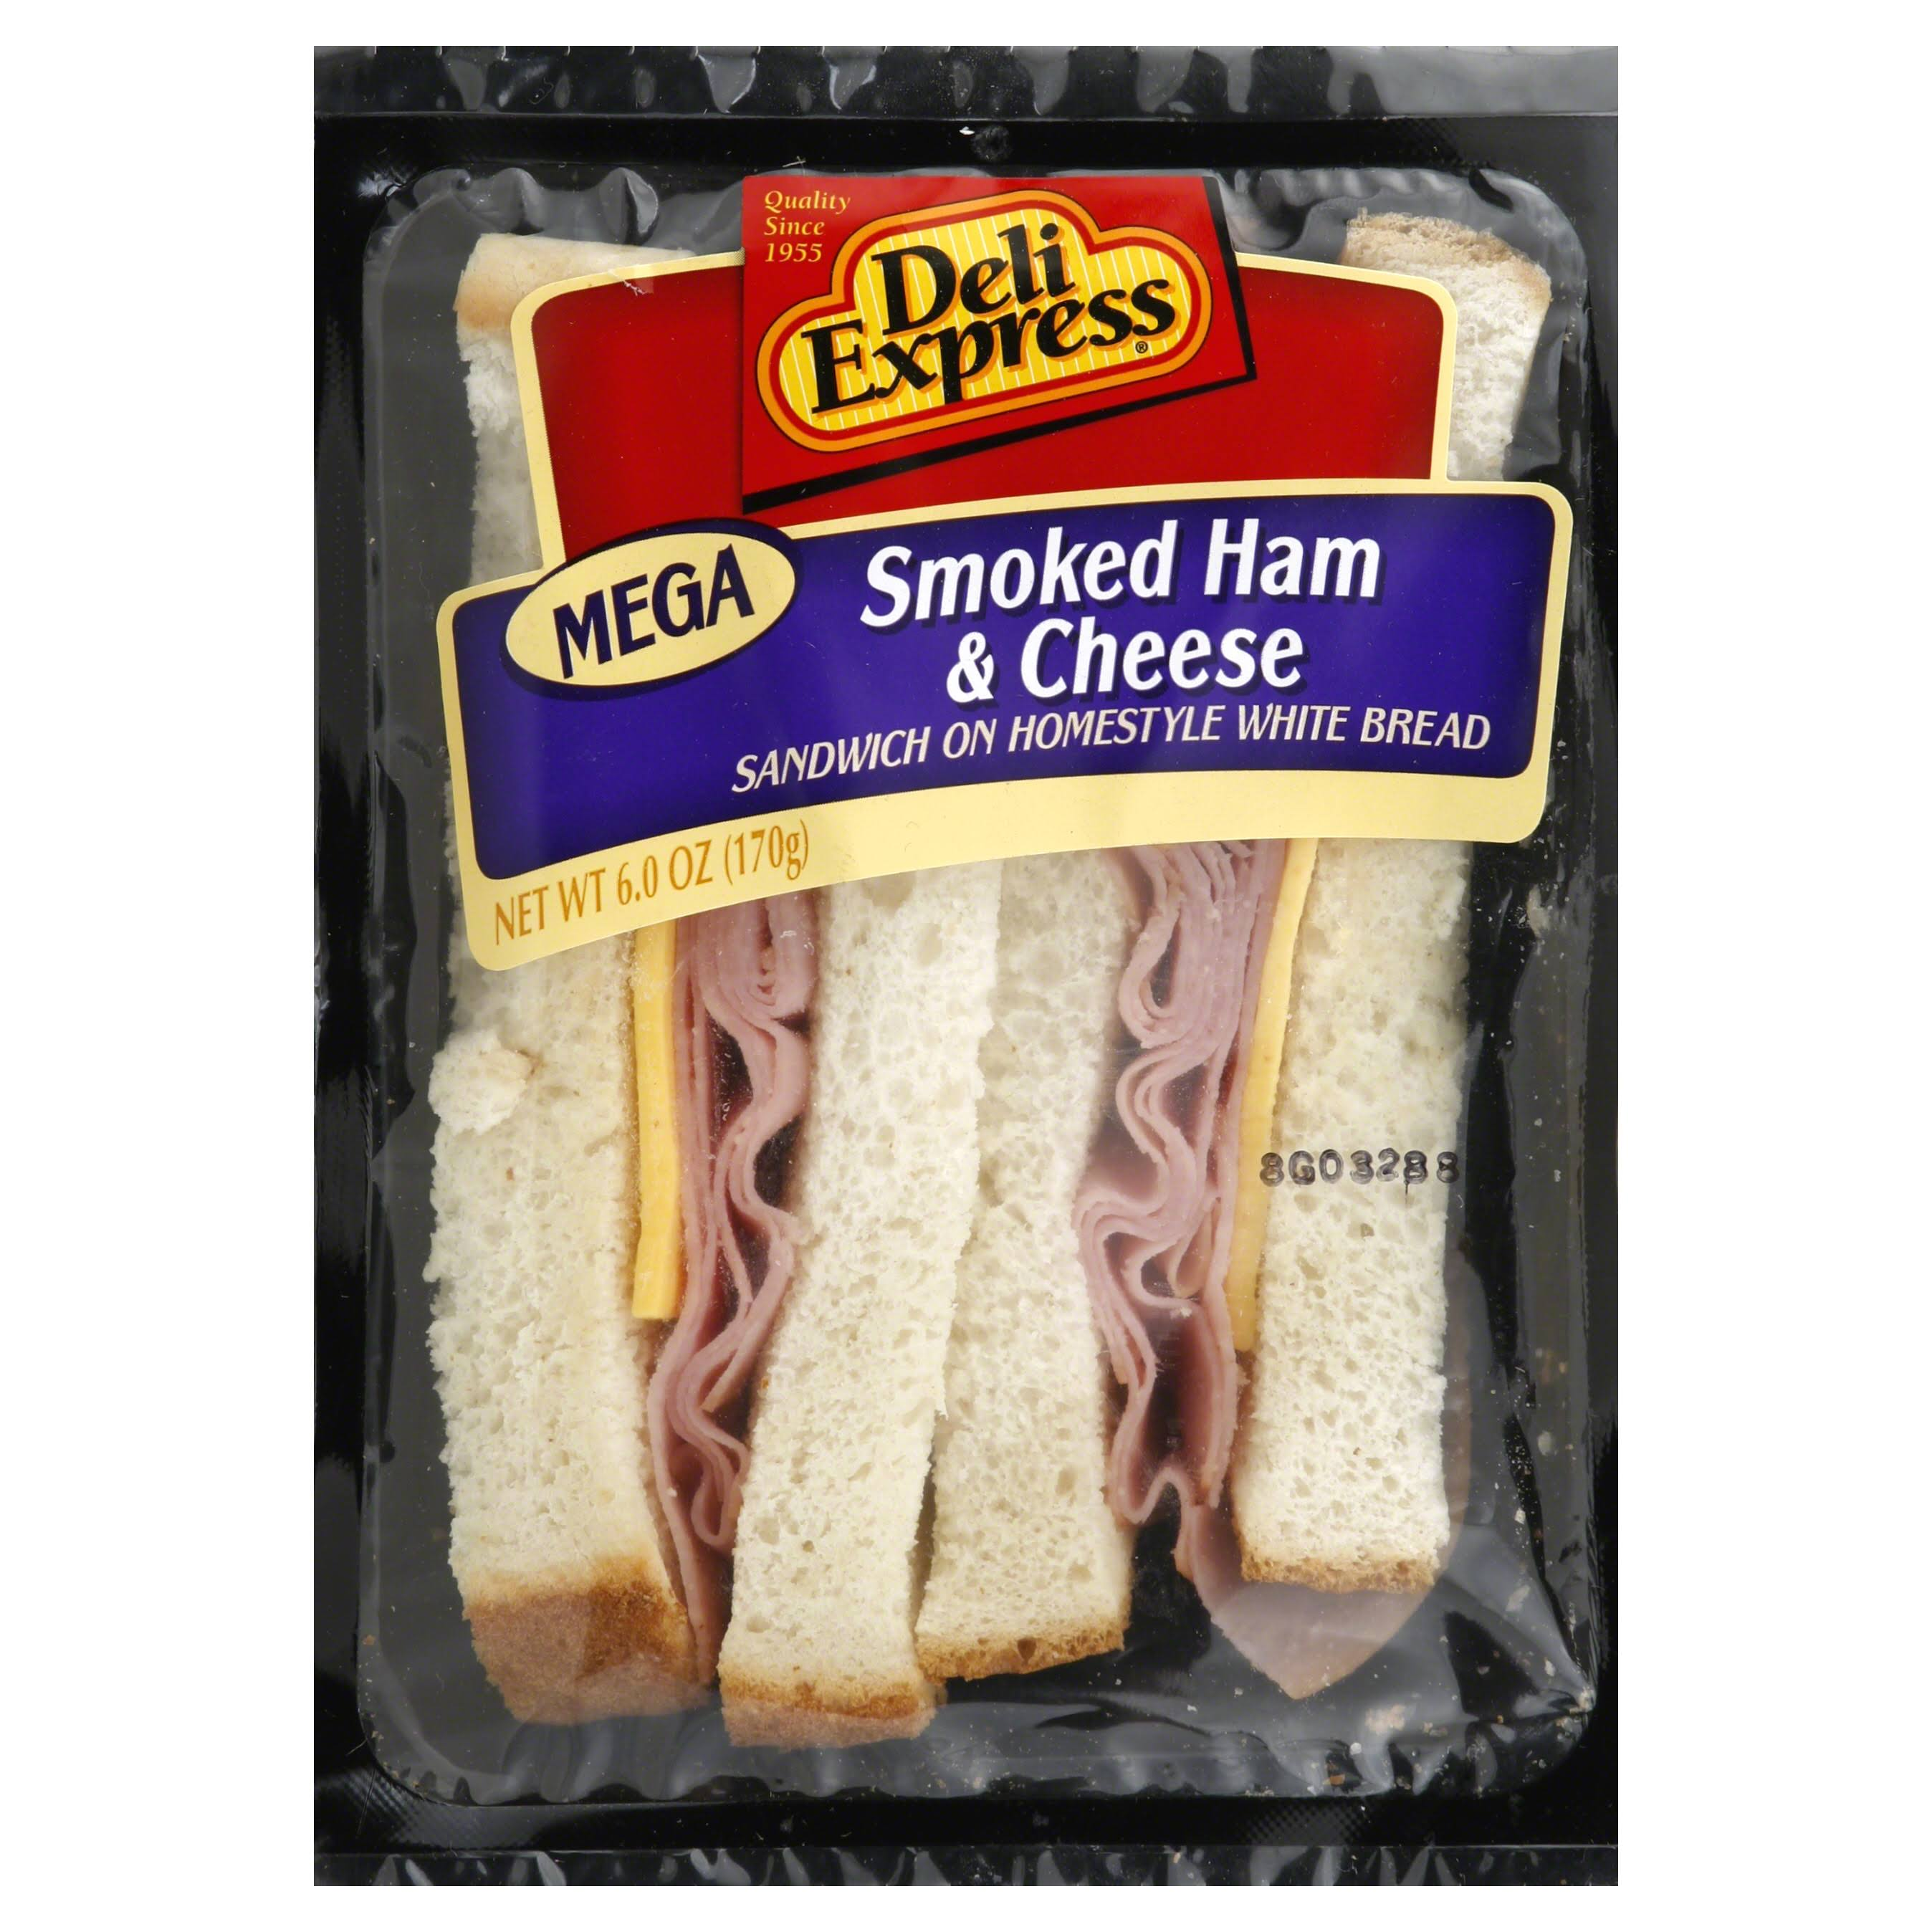 Deli Express Sandwich, Smoked Ham & Cheese, Mega - 6.0 oz